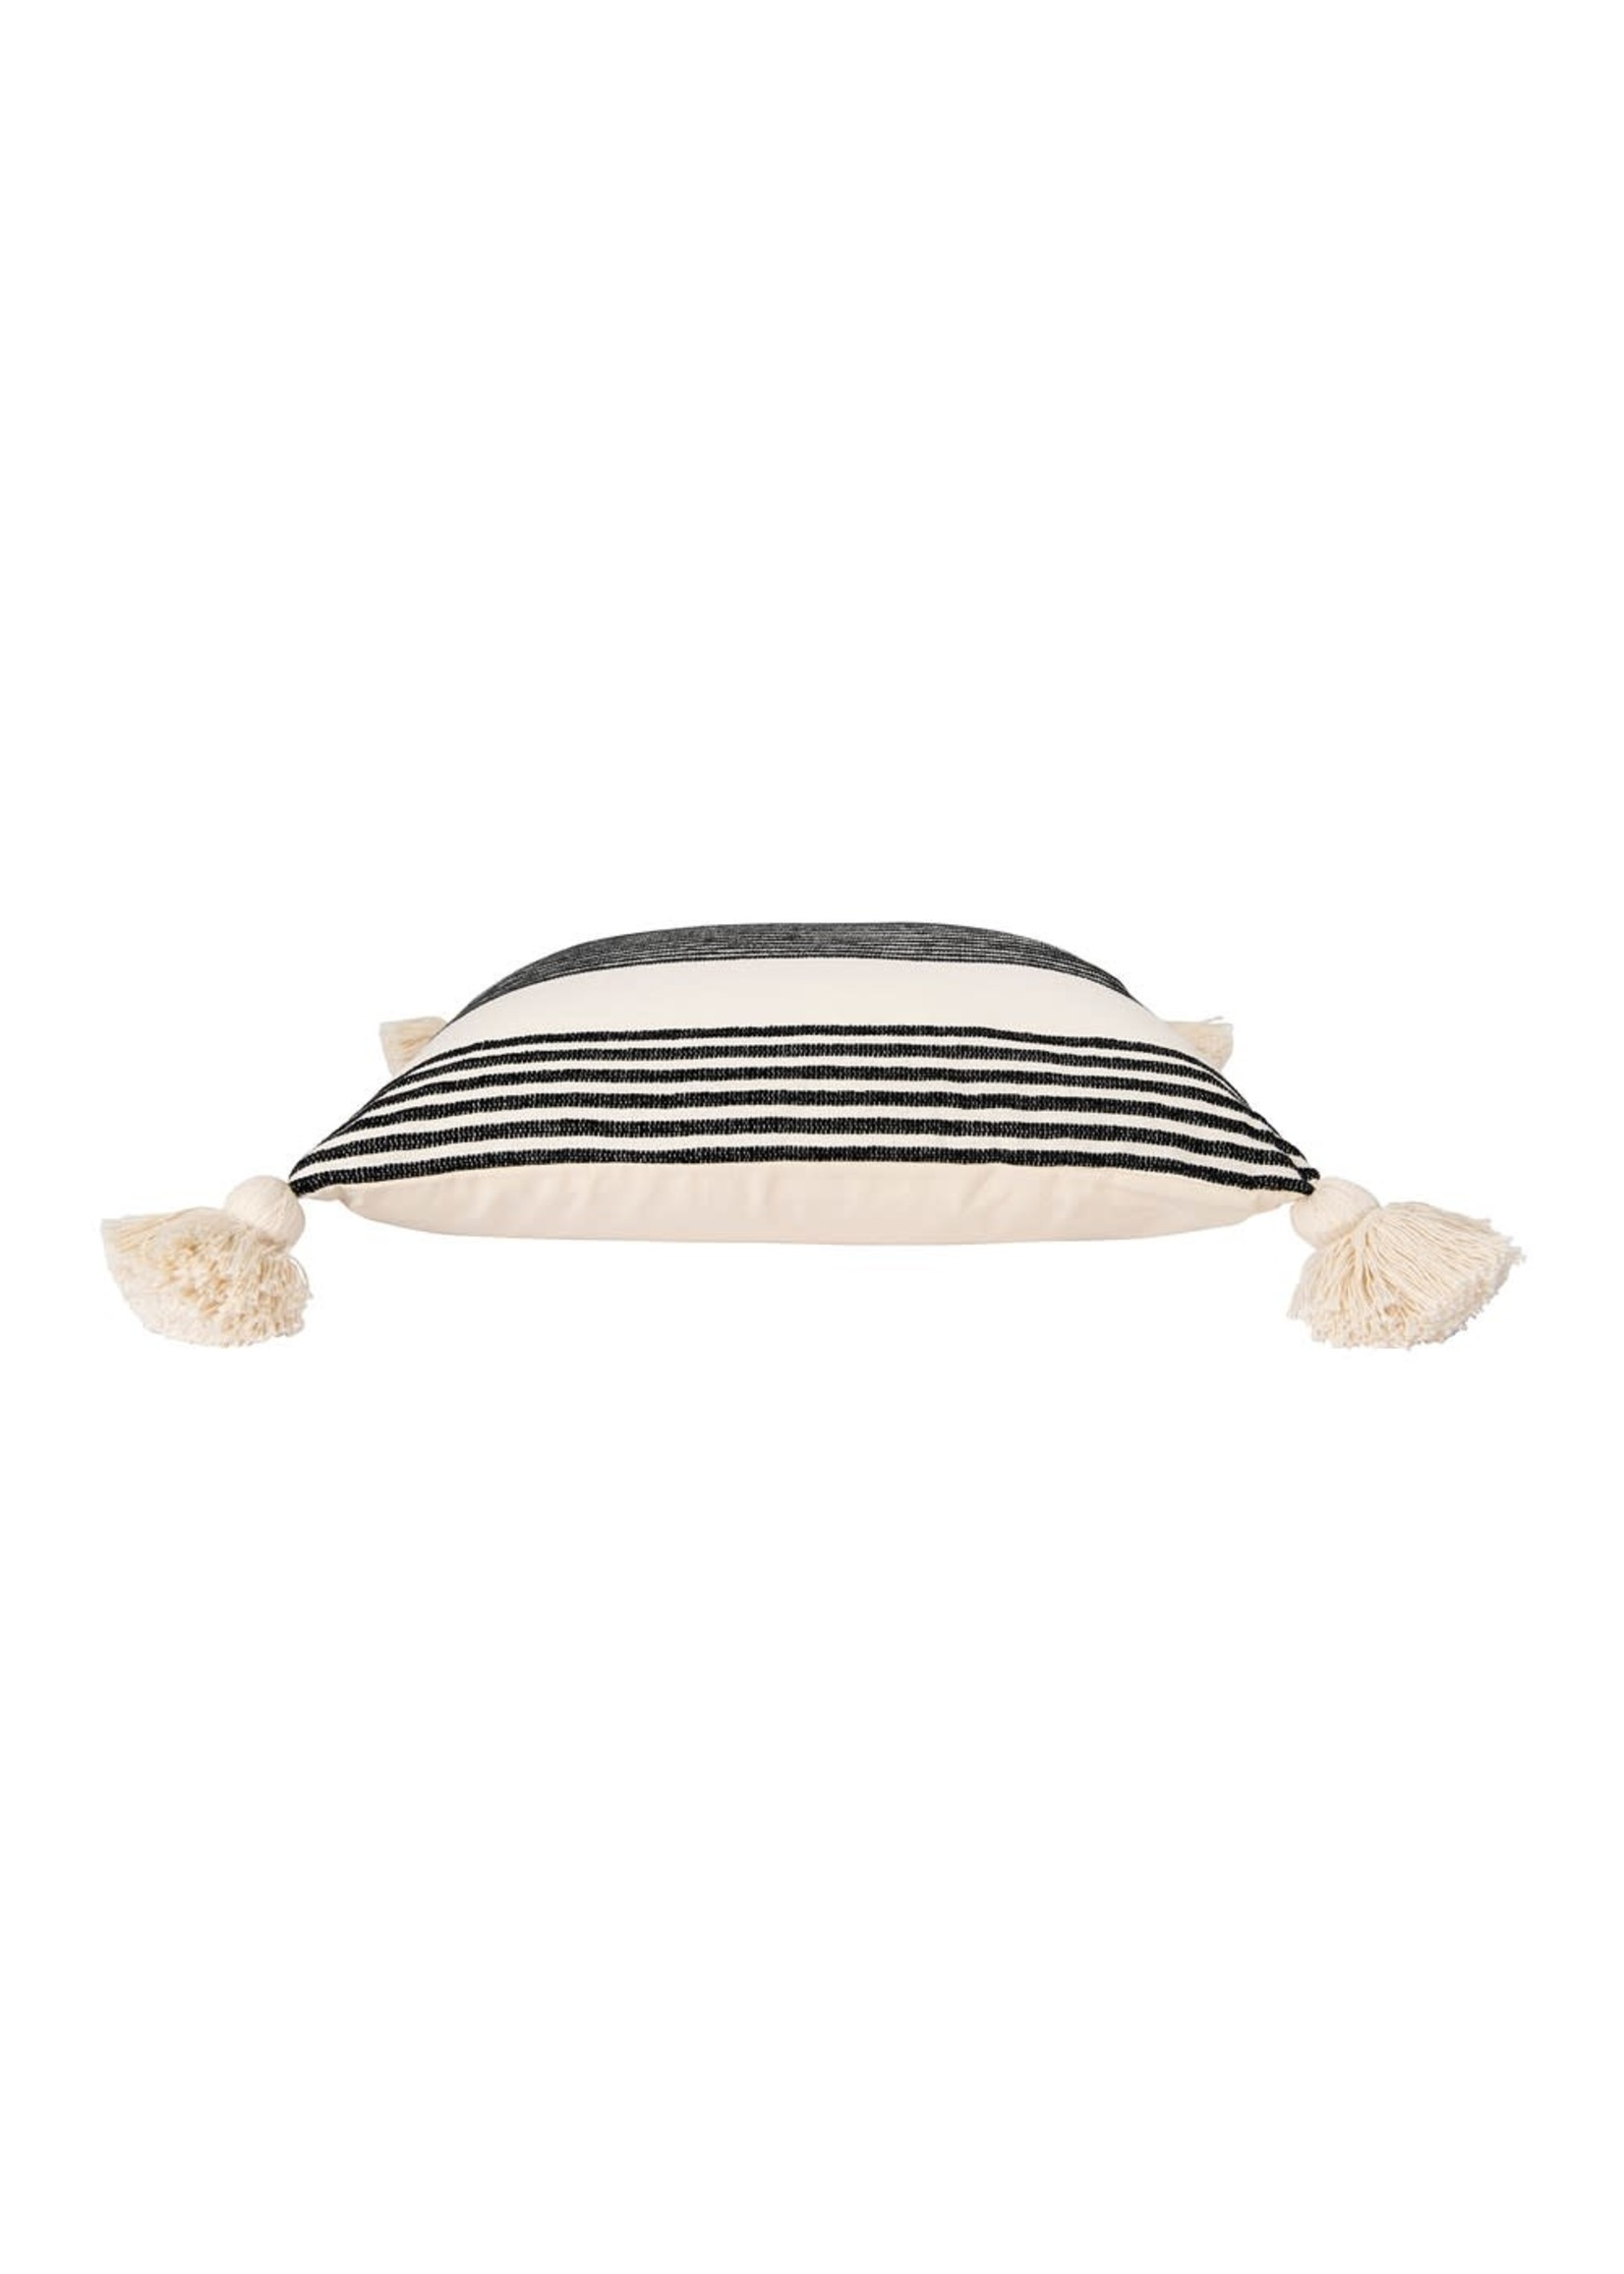 creative Co-op Black Square Stripped Pillow w Tassels